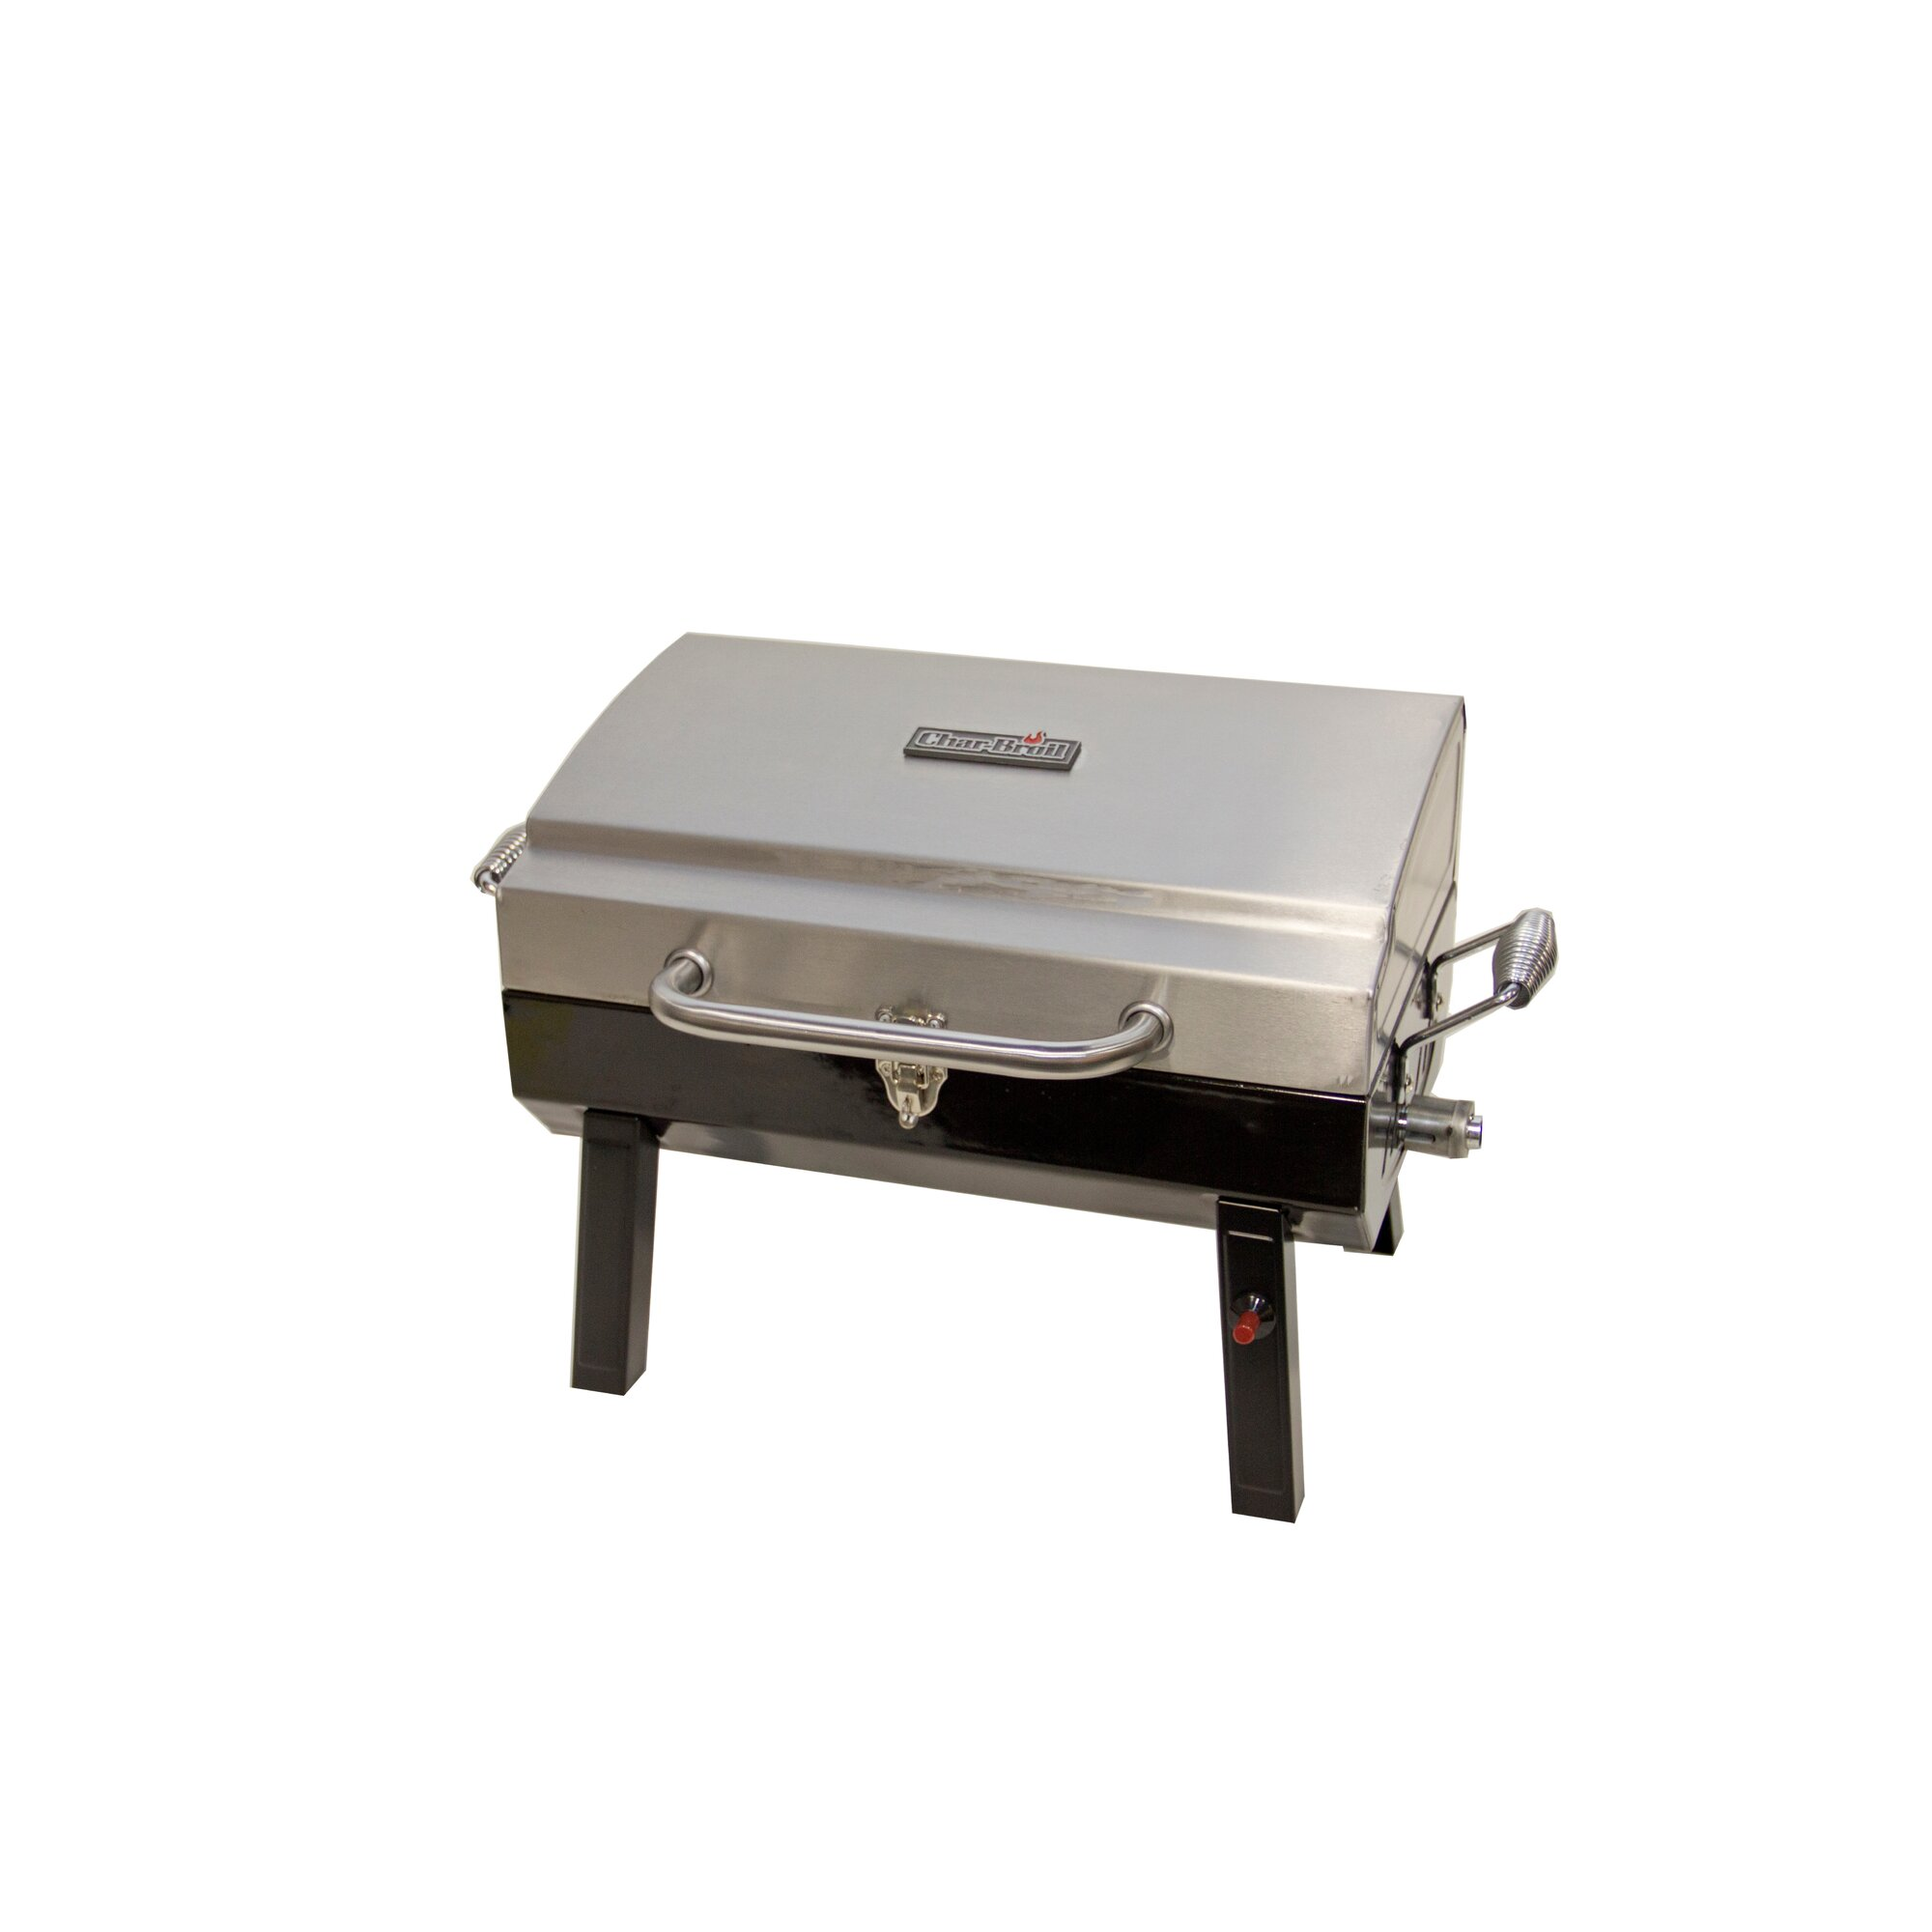 CharBroil Deluxe 1 Burner Portable Propane Gas Grill & Reviews ...